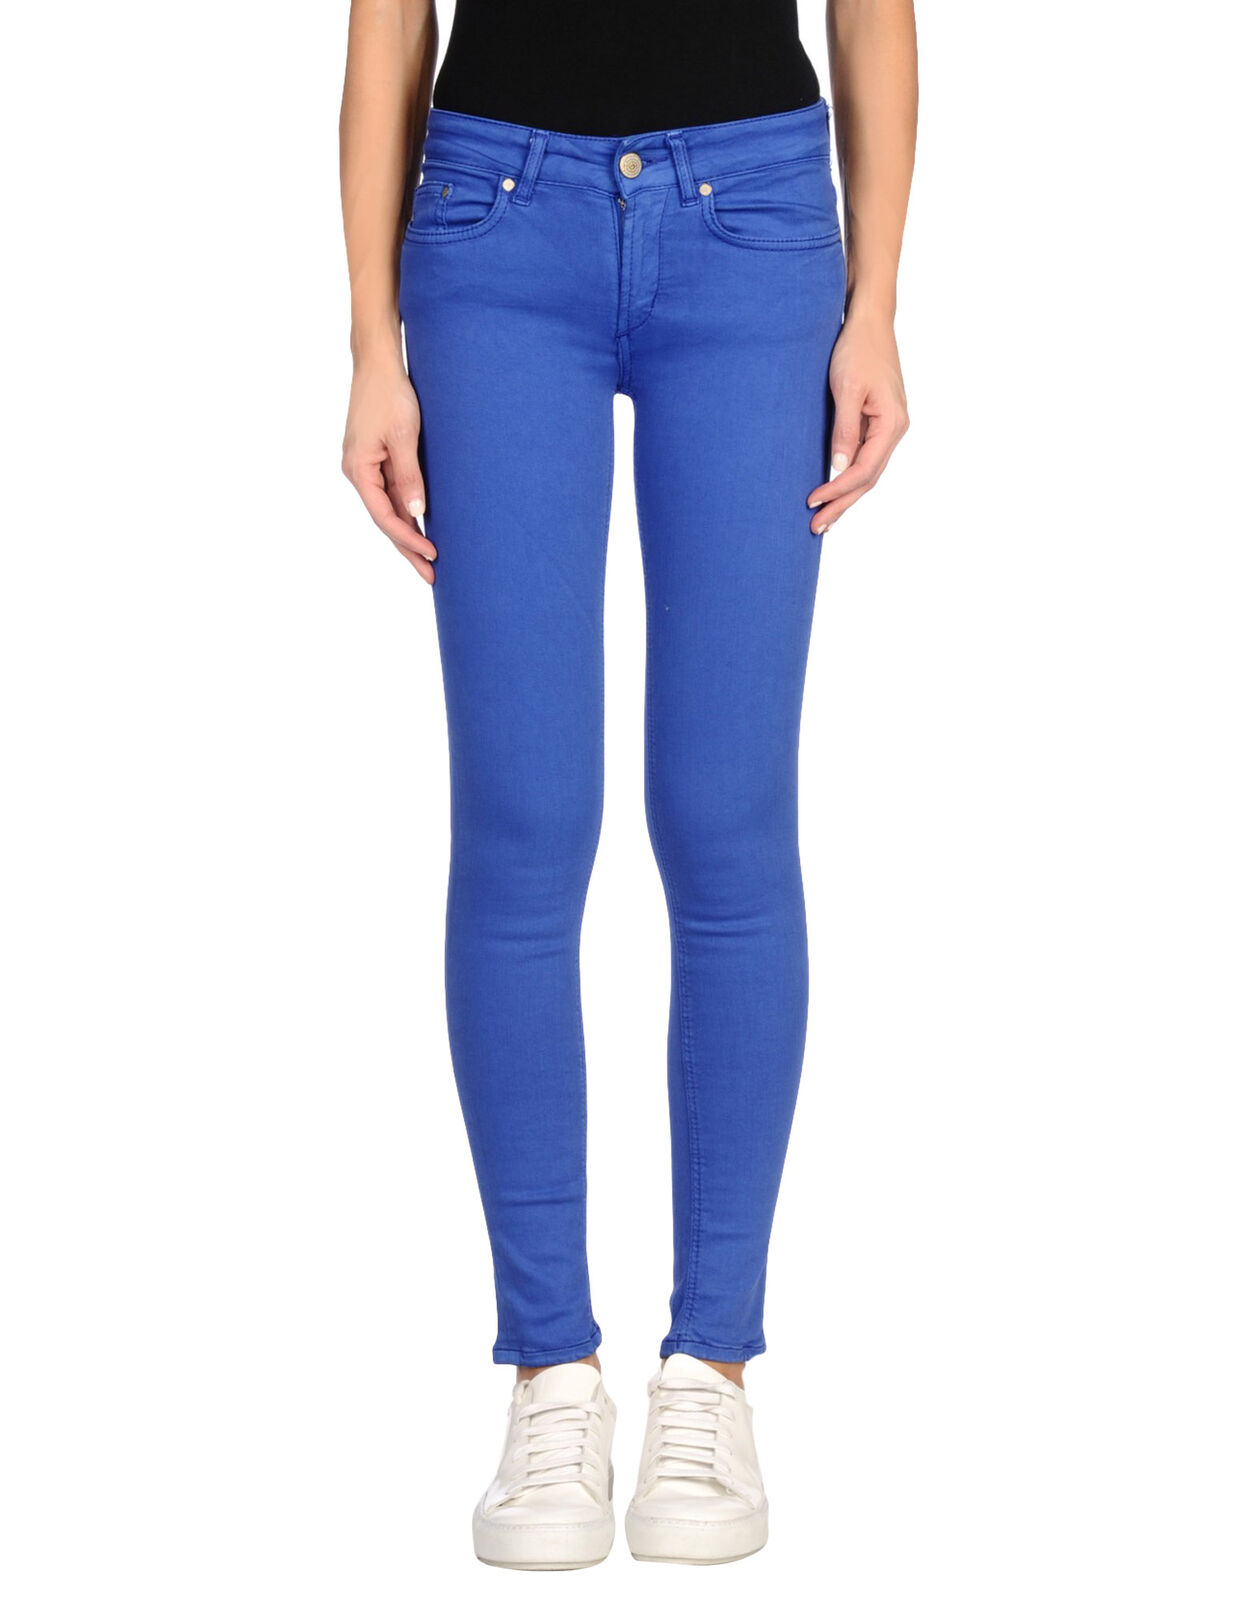 Dondup Womens Denim Low Slim Trousers Jeans Bright bluee 25(XS) Made In